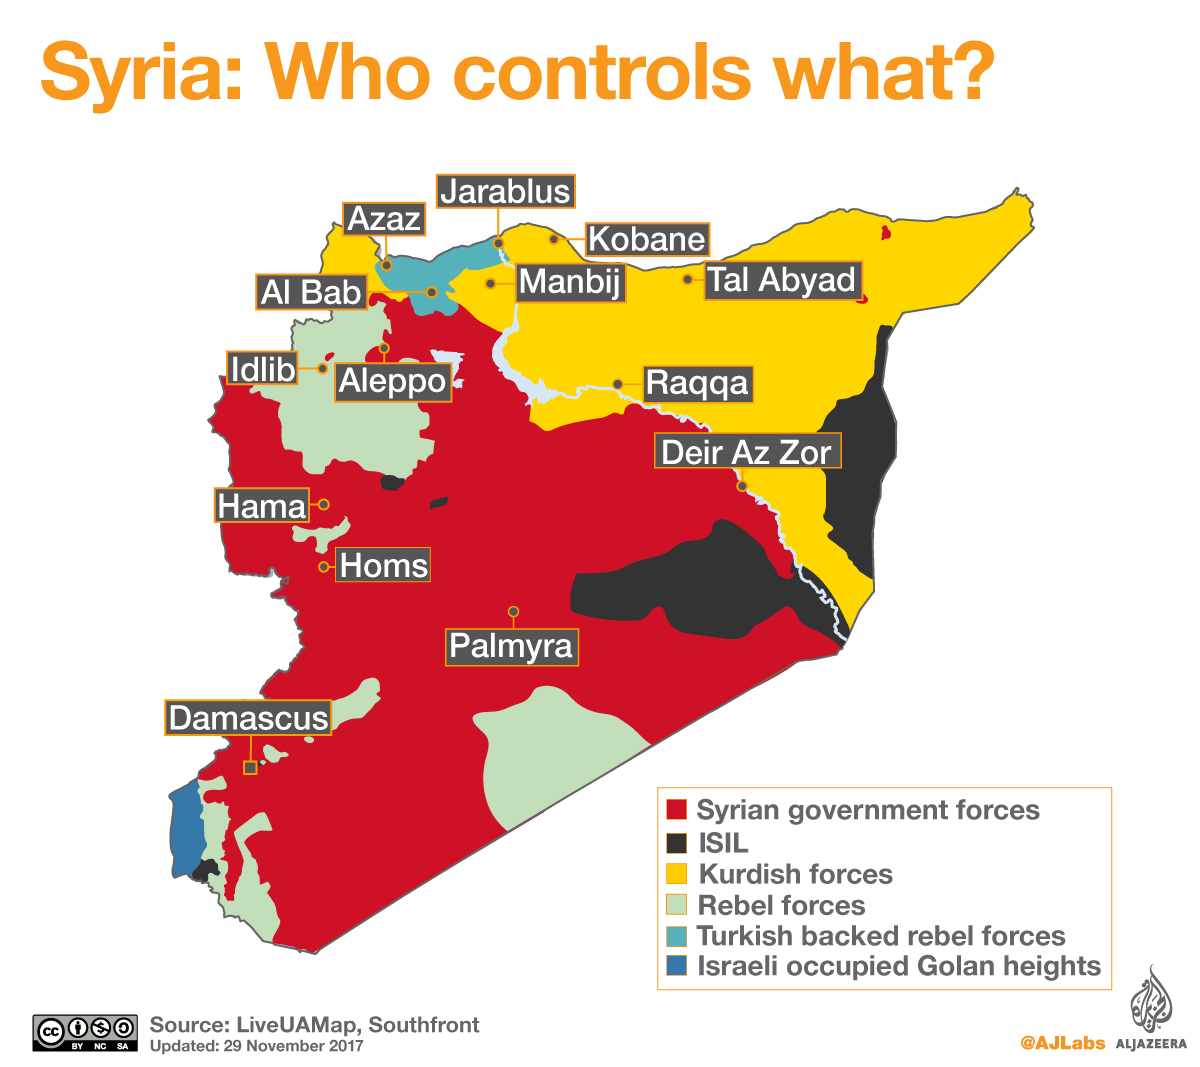 missile attacks on chemical weapons facilities in syria last week by combined american british and france forces make me wonder if we are pursuing the